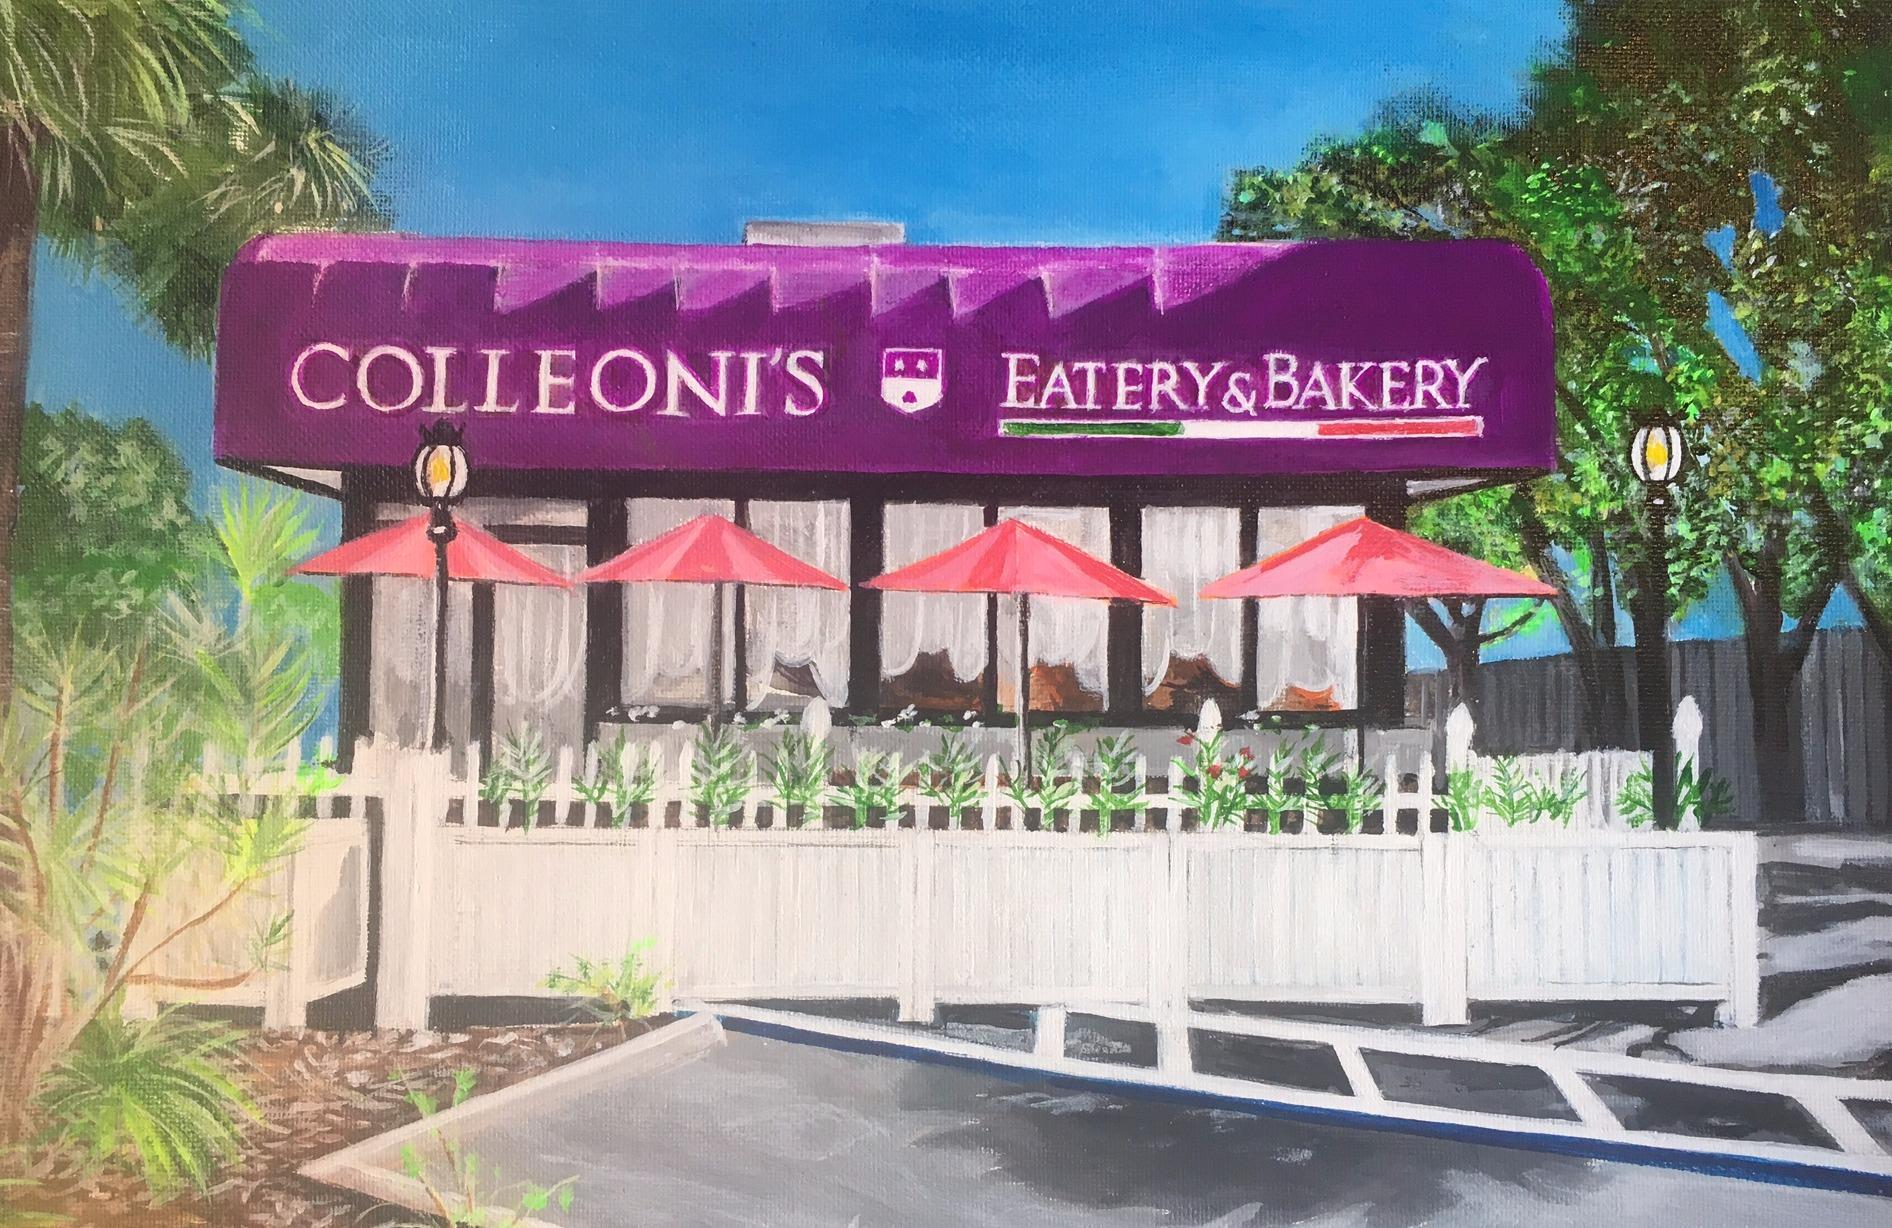 Colleoni's Eatery & Bakery image 5